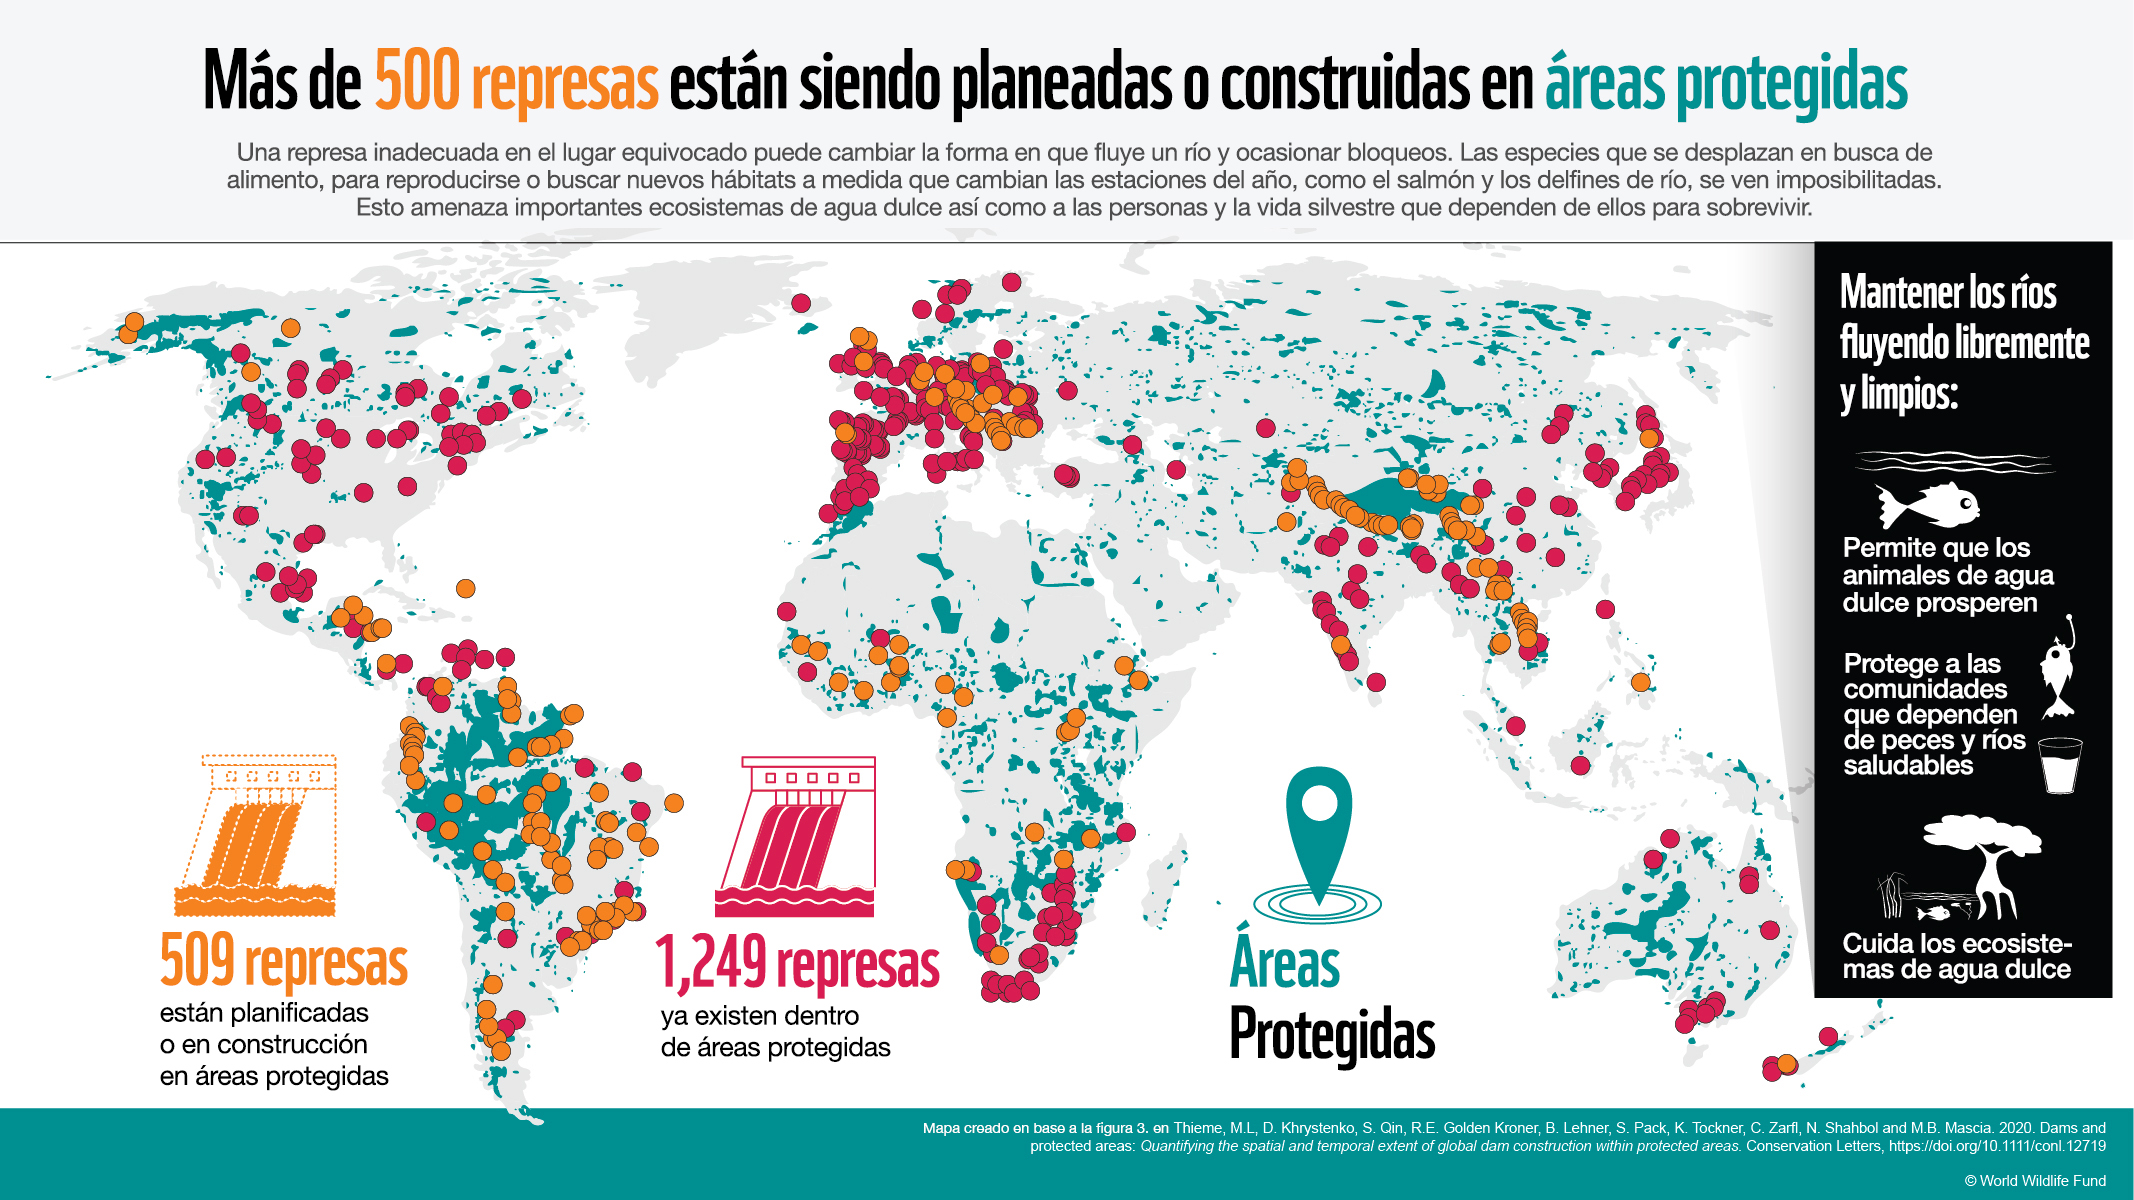 Infographic showing of the global map where ver 500 new dams are planned for development in protected areas. 1,249 red dots across the world represent existing dams, and 502 orange dots across the world represent new dams in plan.